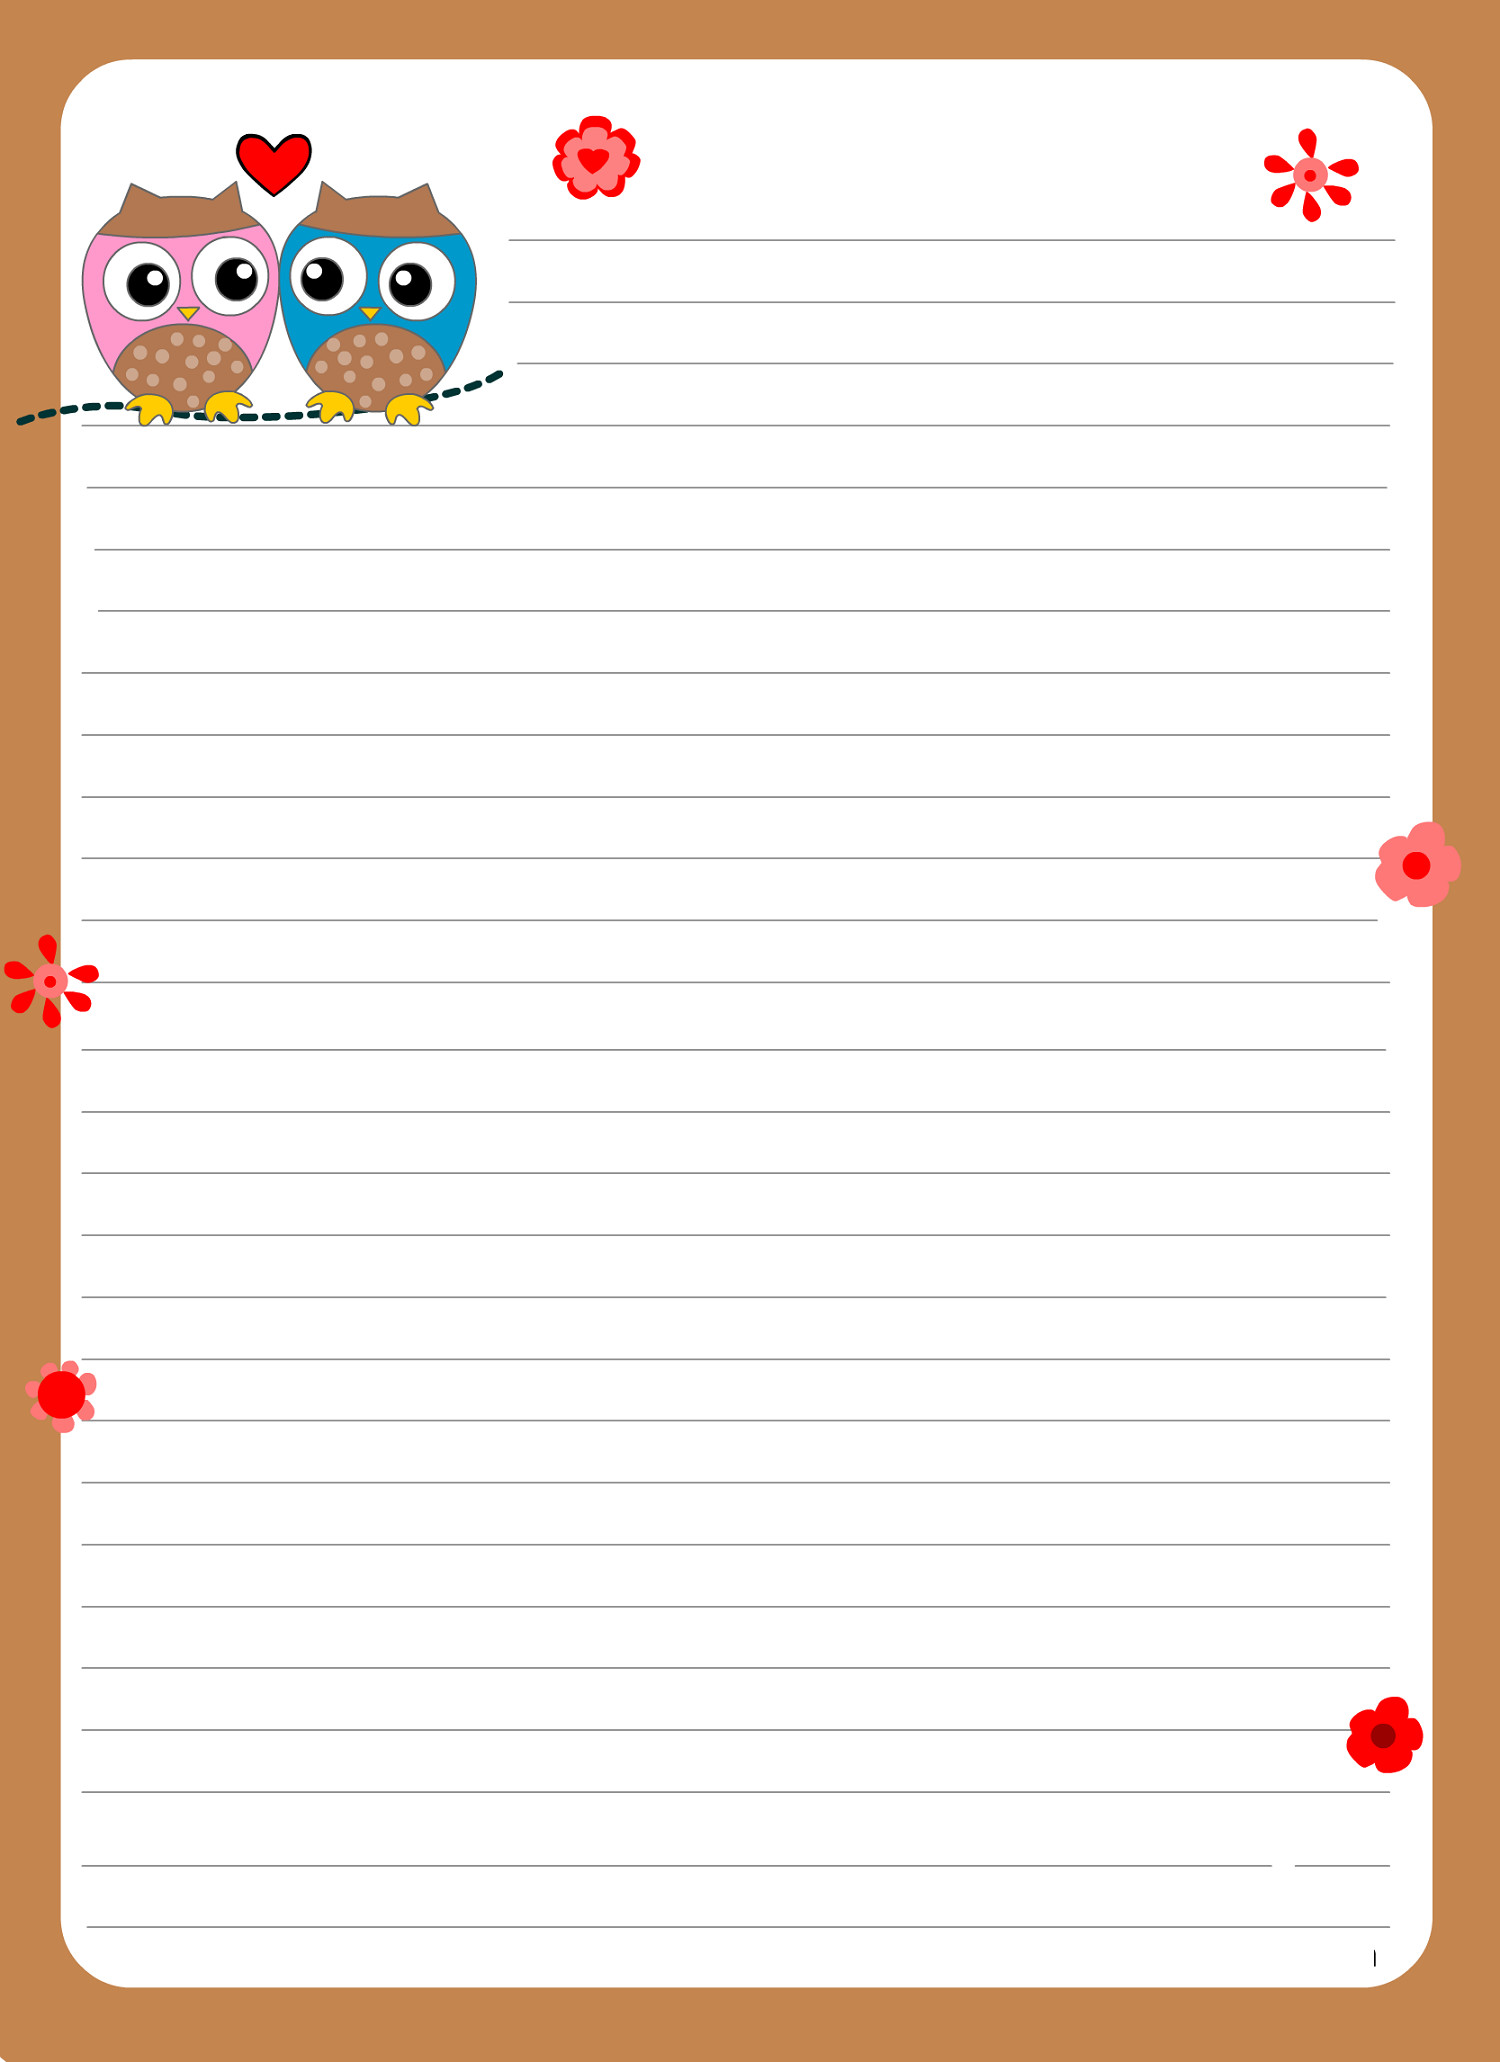 Lined Paper Wallpaper (31+ images)